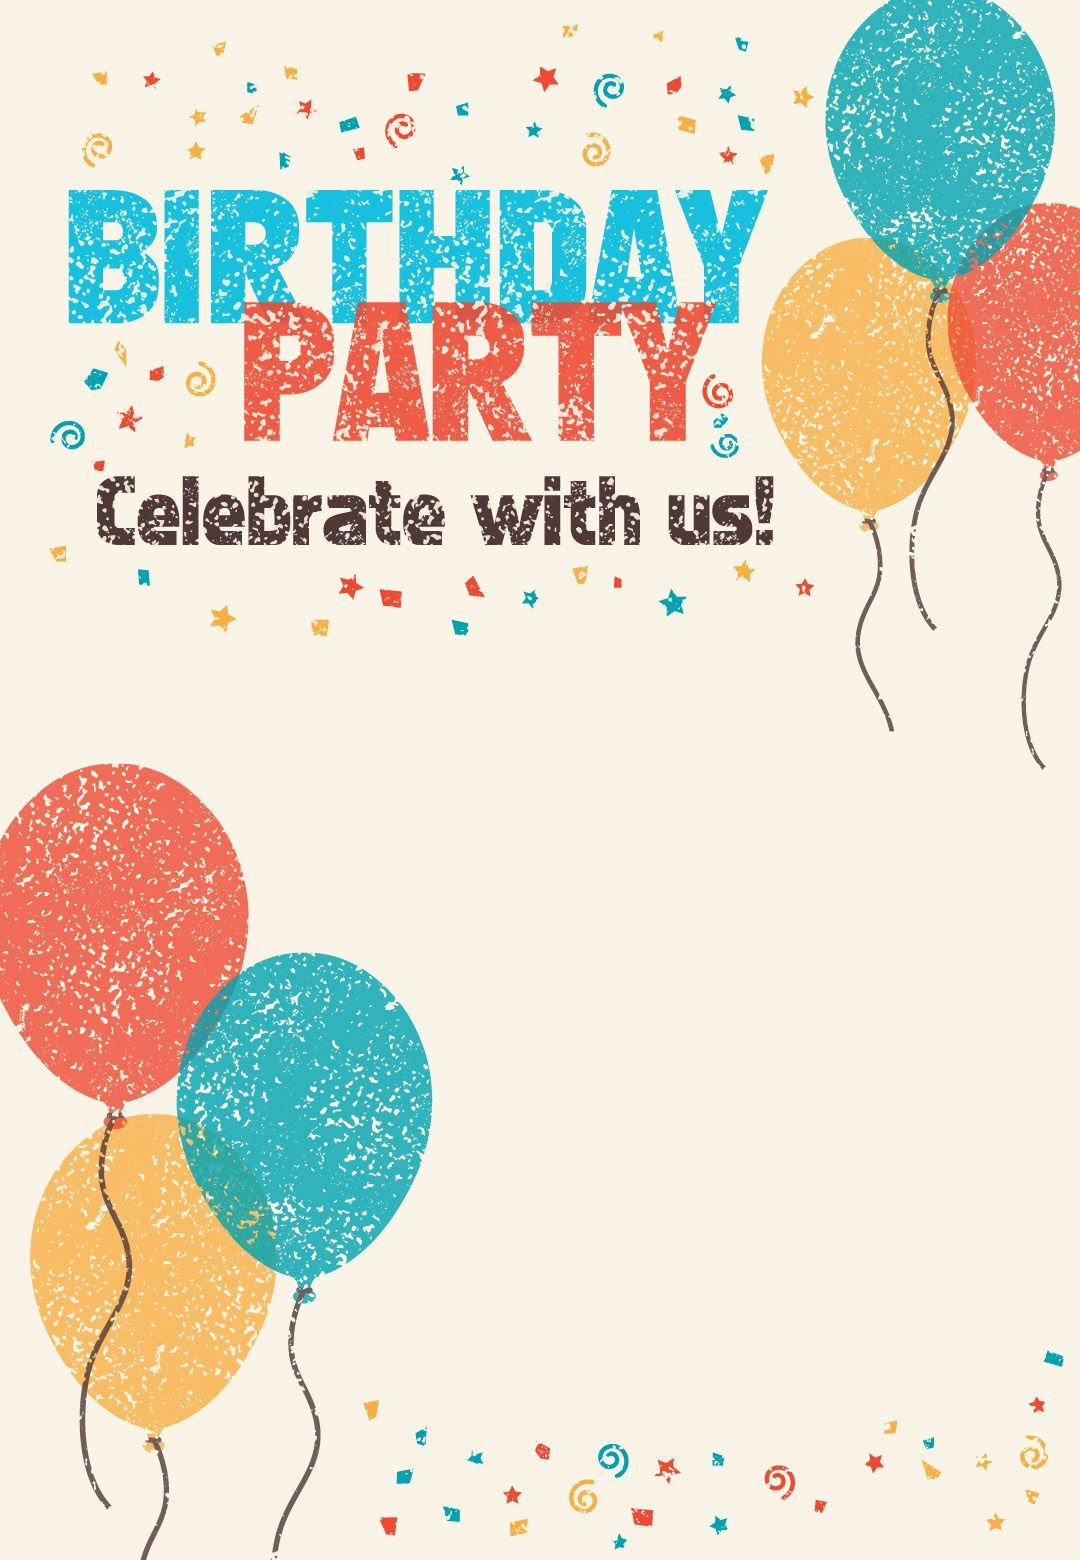 Free Printable Invitations Templates Unique Free Printable Celebrate with Us Invitation Great Site